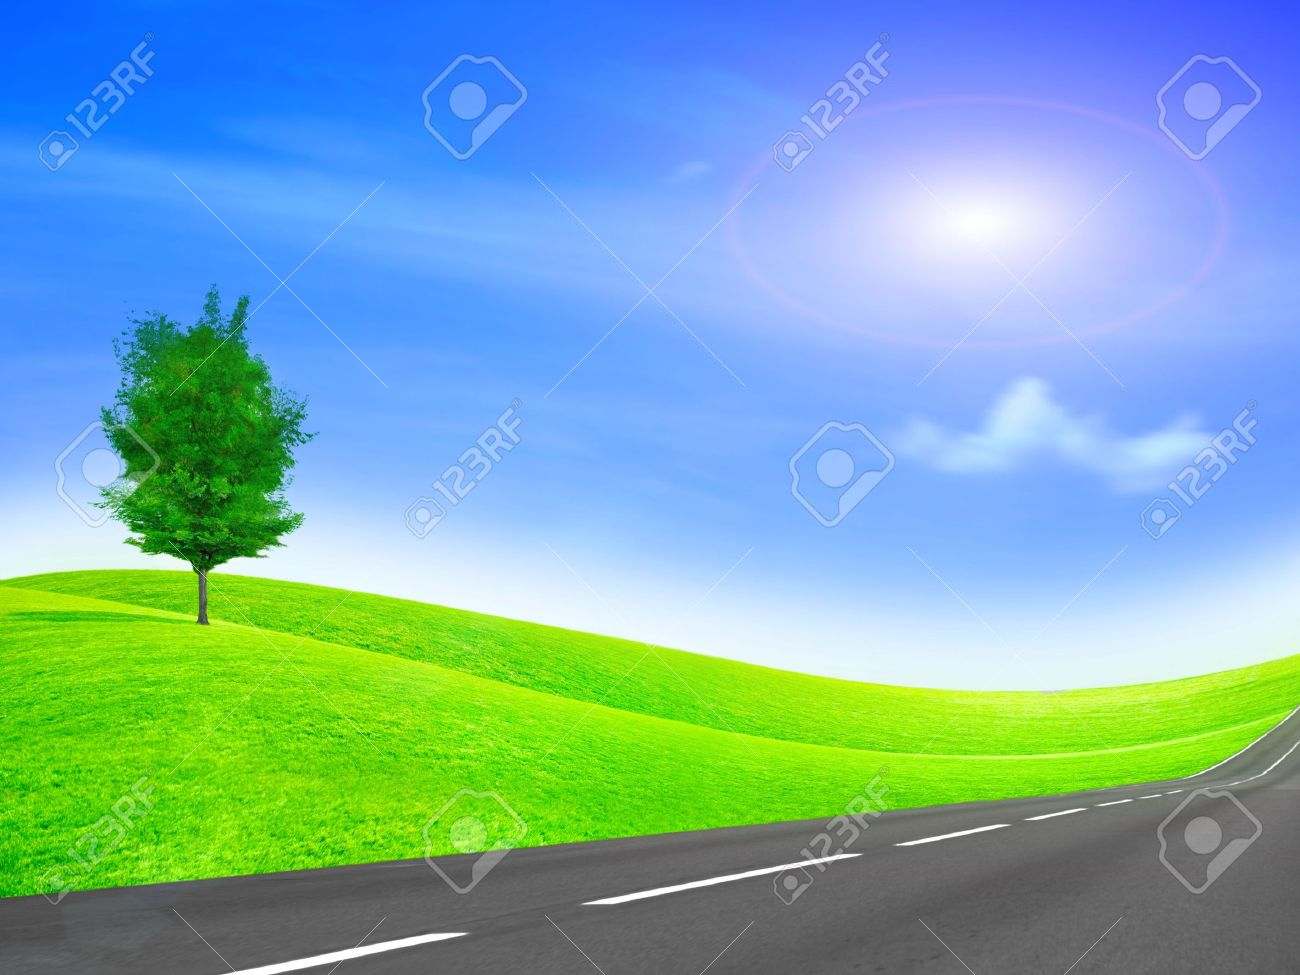 abstract scene car road on background year sky Stock Photo - 6592806